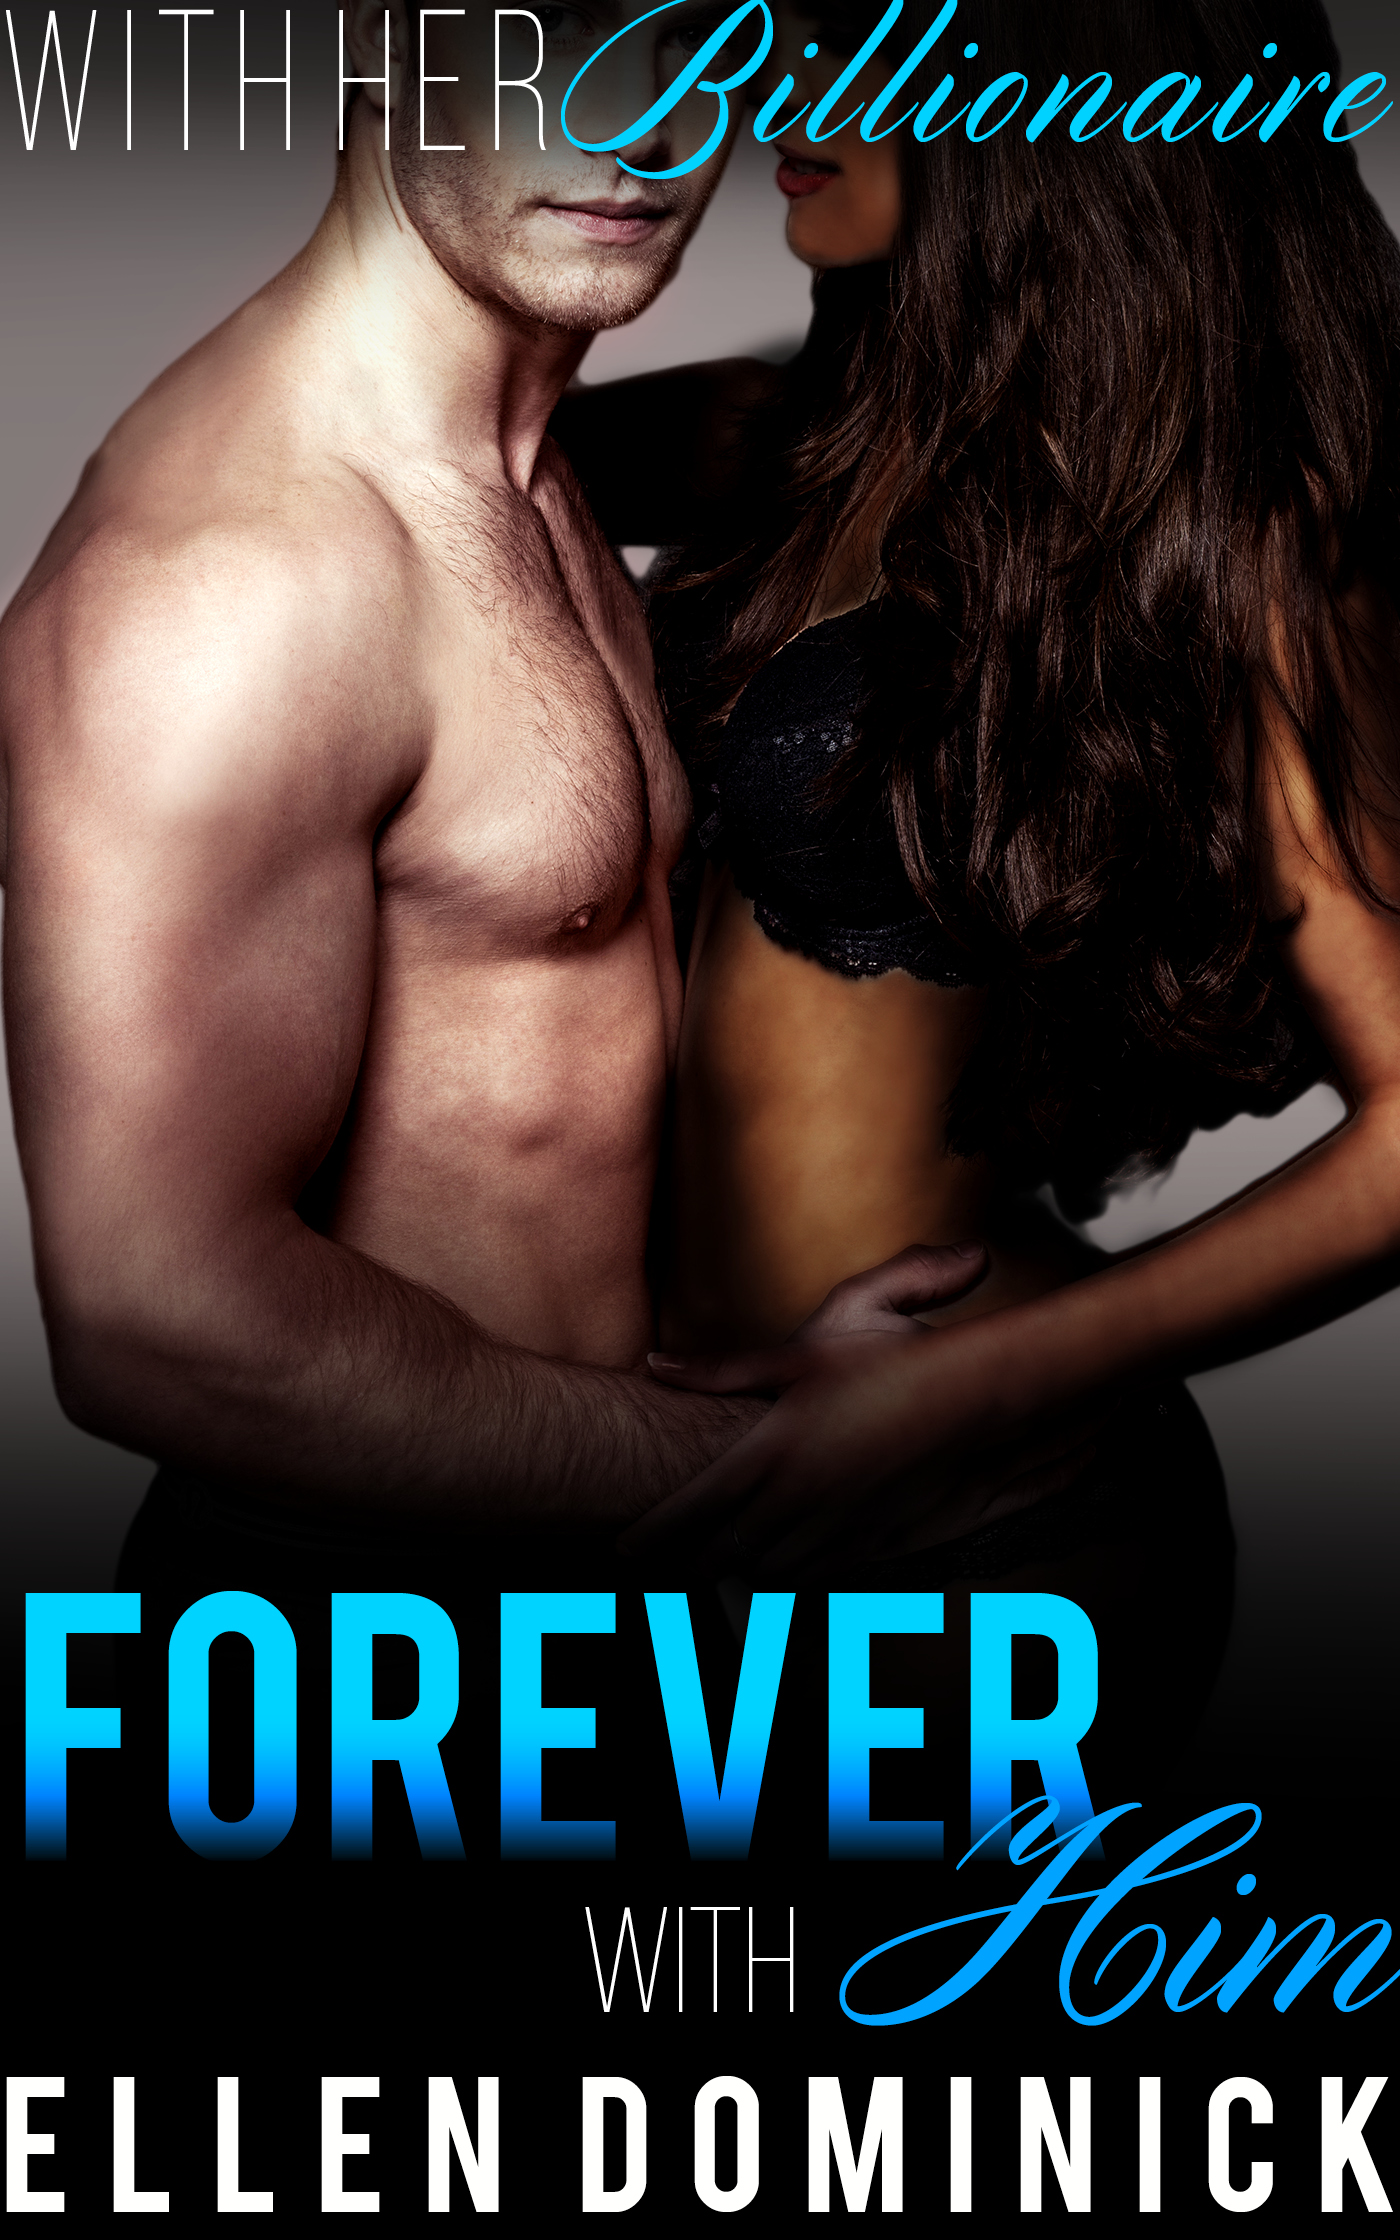 Forever with him: with her billionaire, book 6